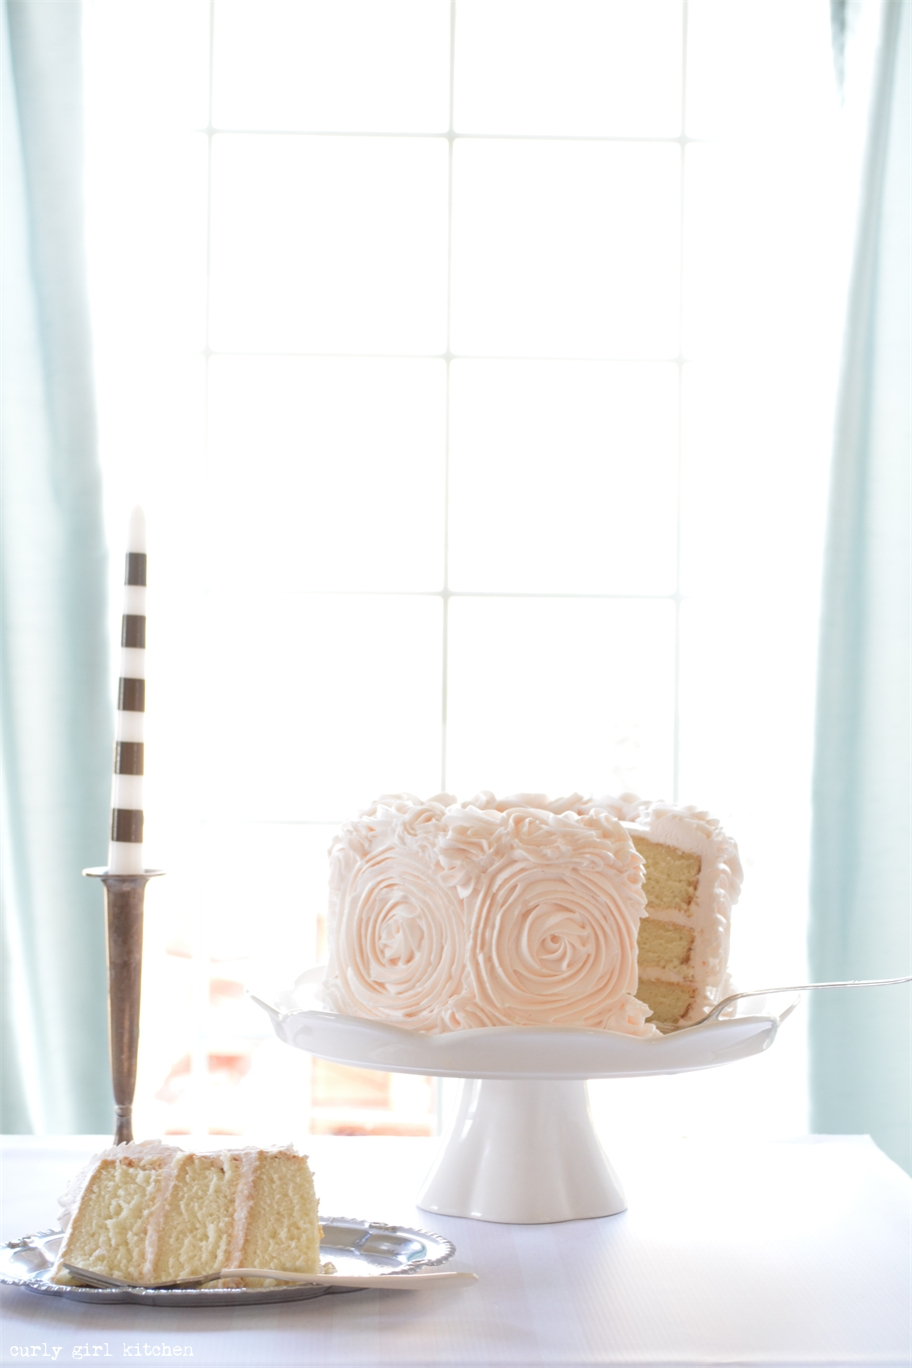 Inspired By The Dreamy Light Streaming In Our Dining Room Window Sunday Afternoon I Photographed Cake Front Of Letting Backlight